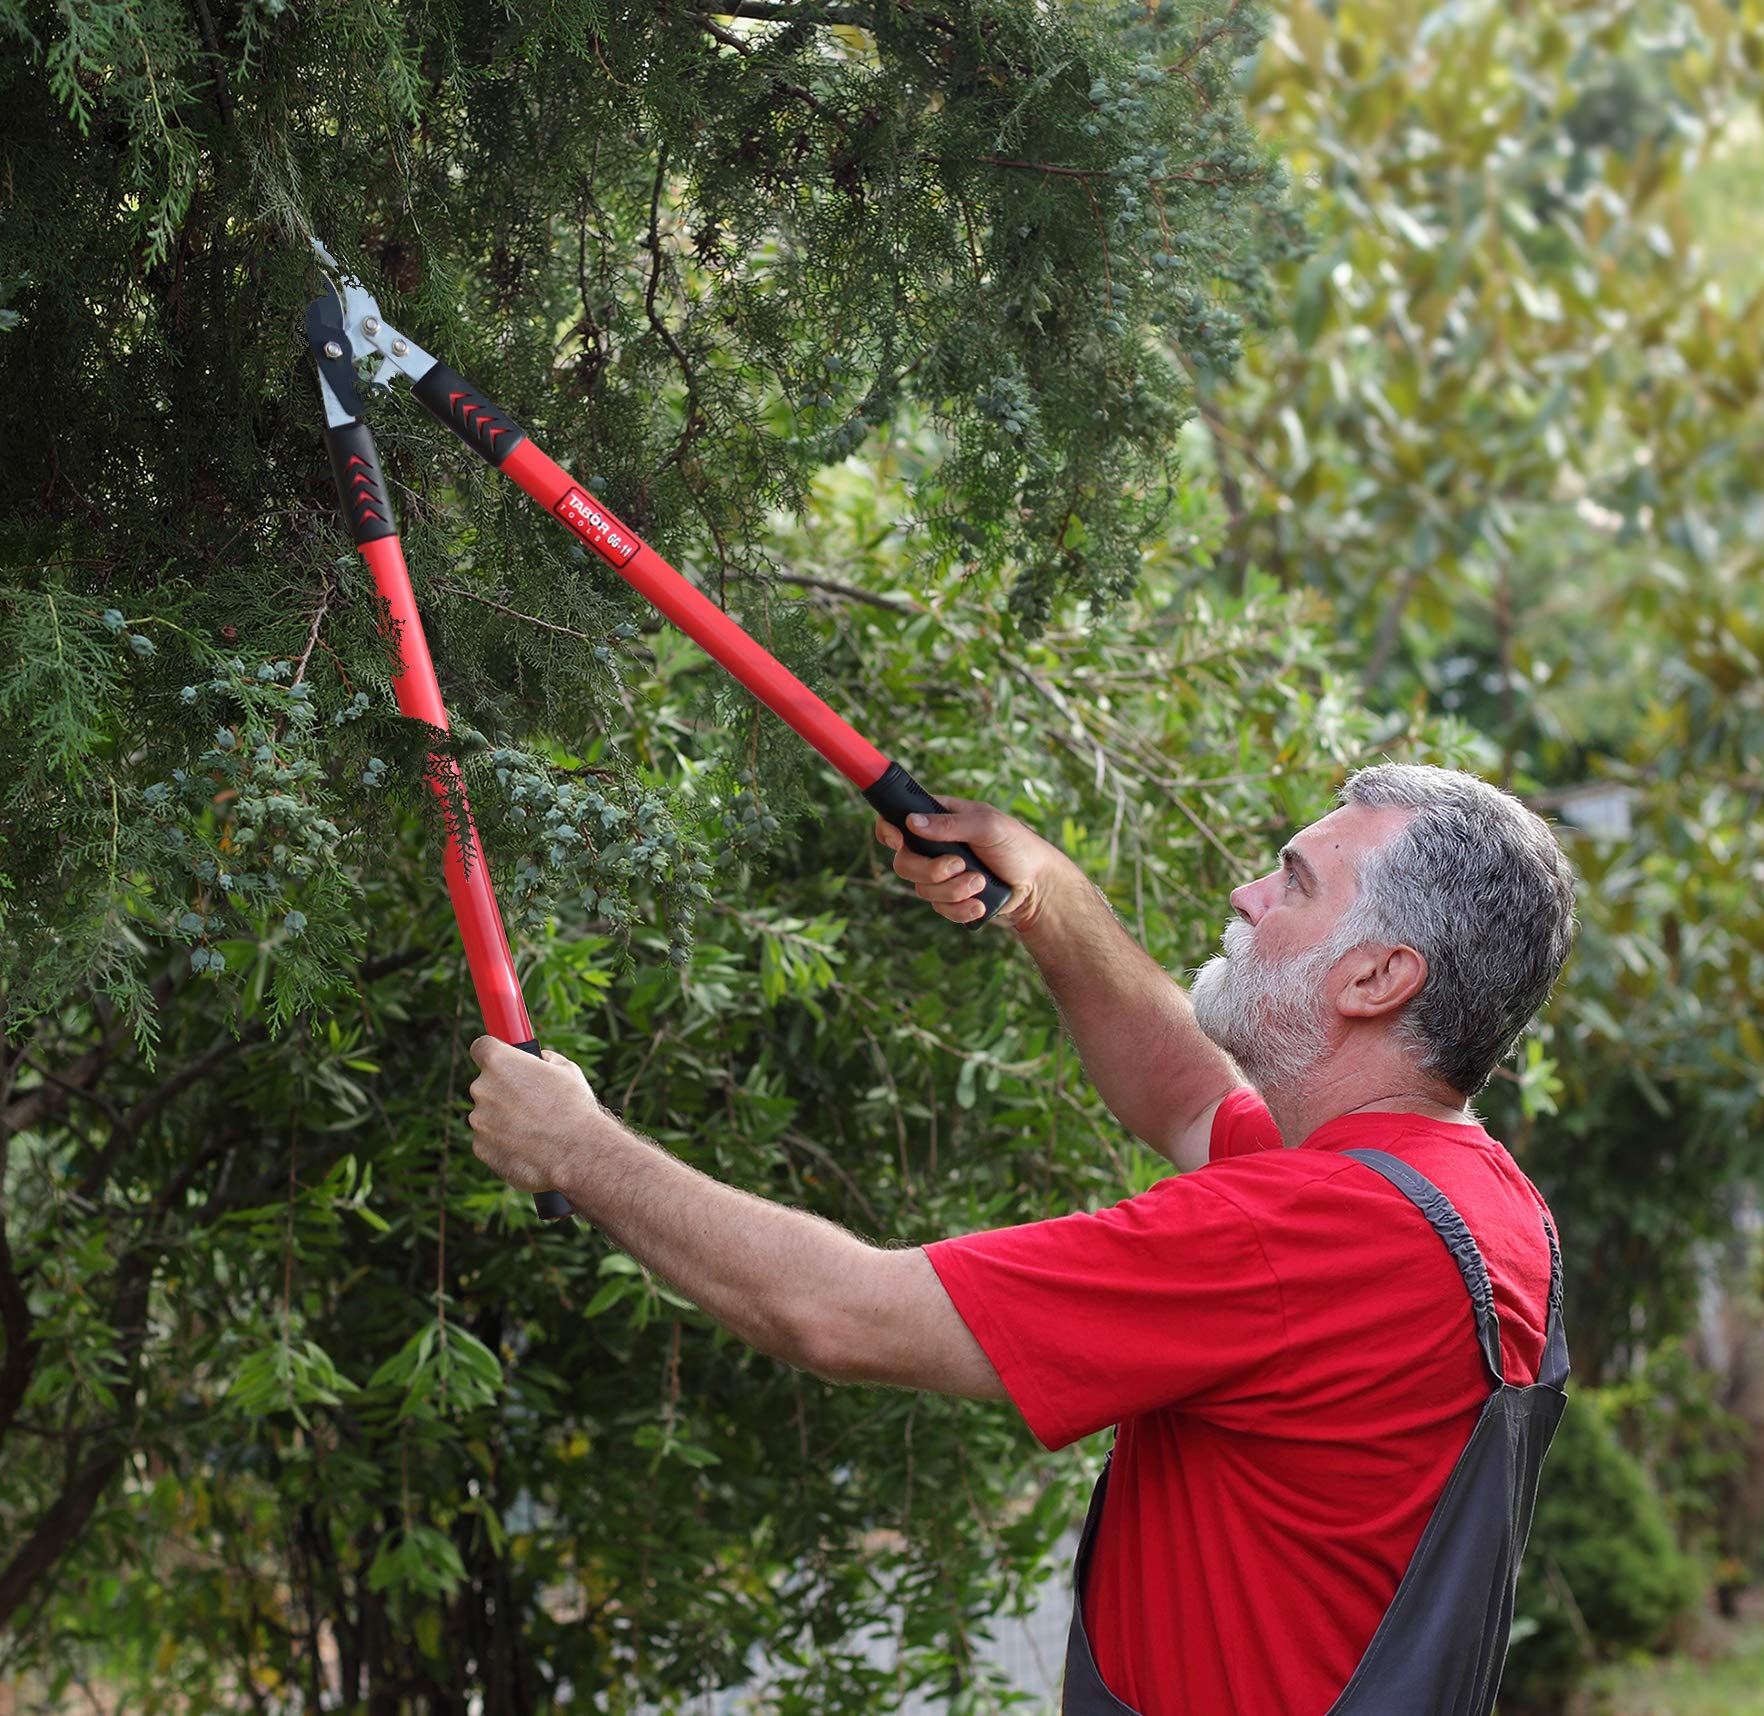 TABOR TOOLS GG11 Professional Compound Action Bypass Lopper, Chops Thick Branches with Ease, 1 3/4 Inch Clean-Cut Capacity, 30-Inch Tree Trimmer Featuring Sturdy Extra Leverage 22-Inch Handles. by TABOR TOOLS (Image #3)